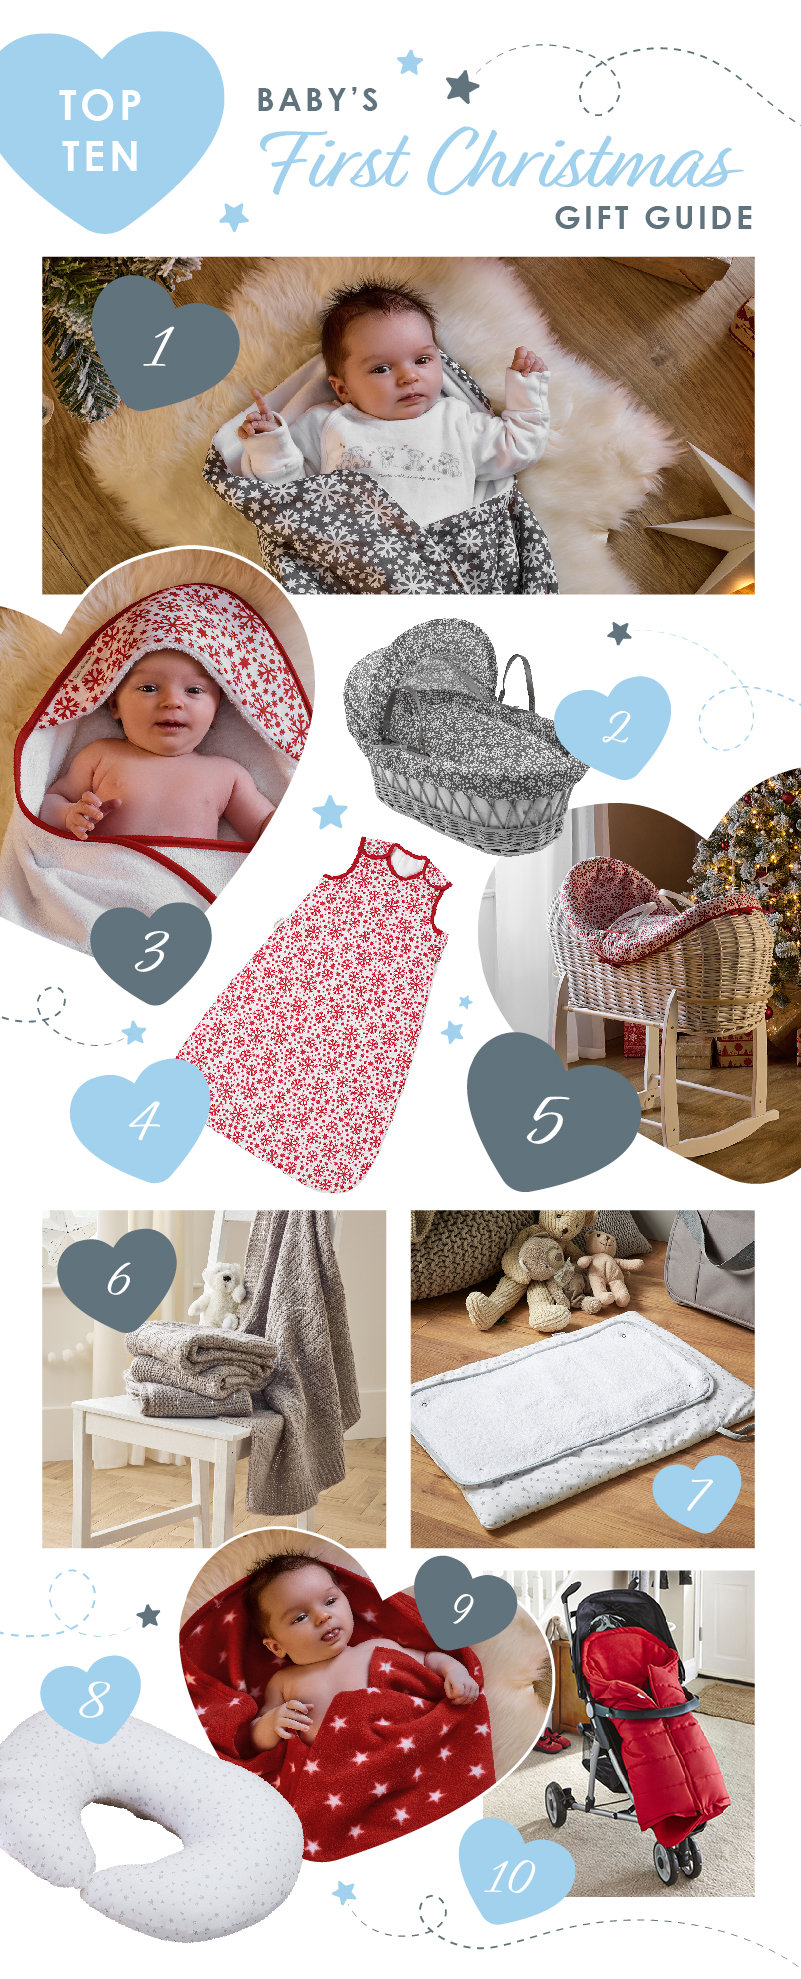 Clair de Lune Baby's First Christmas Gift Guide